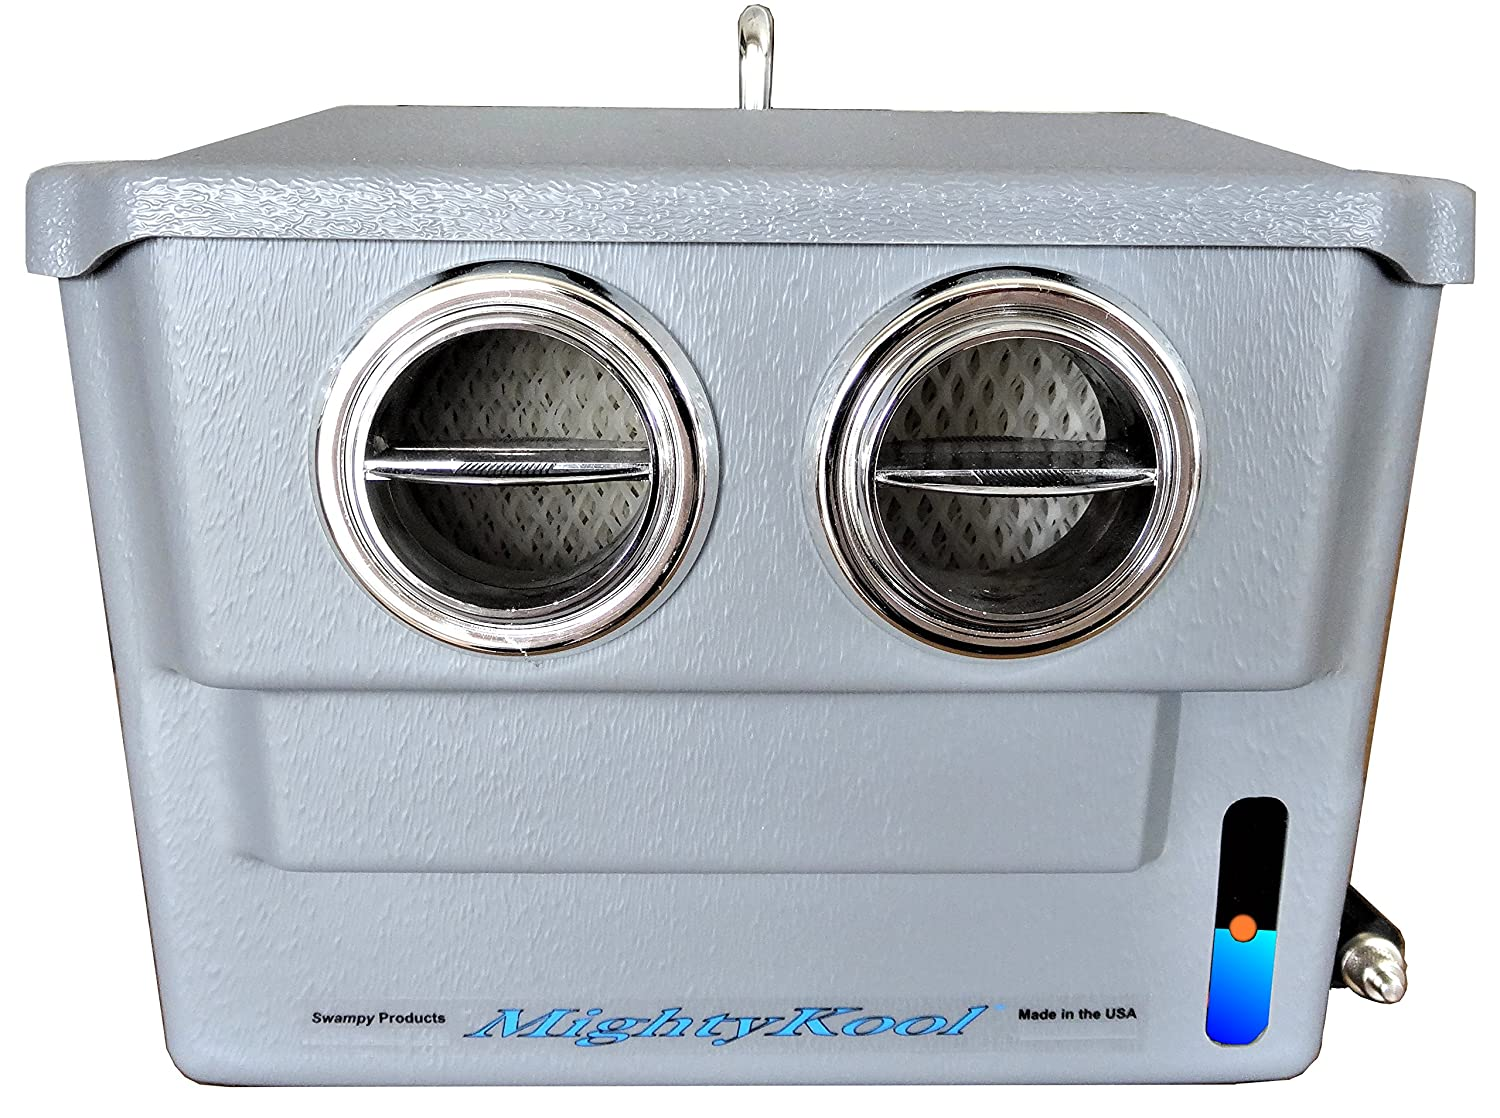 12 Volt Air Conditioner For Car >> Portable 12 Volt Air Conditioner Systems For Pets When It Is